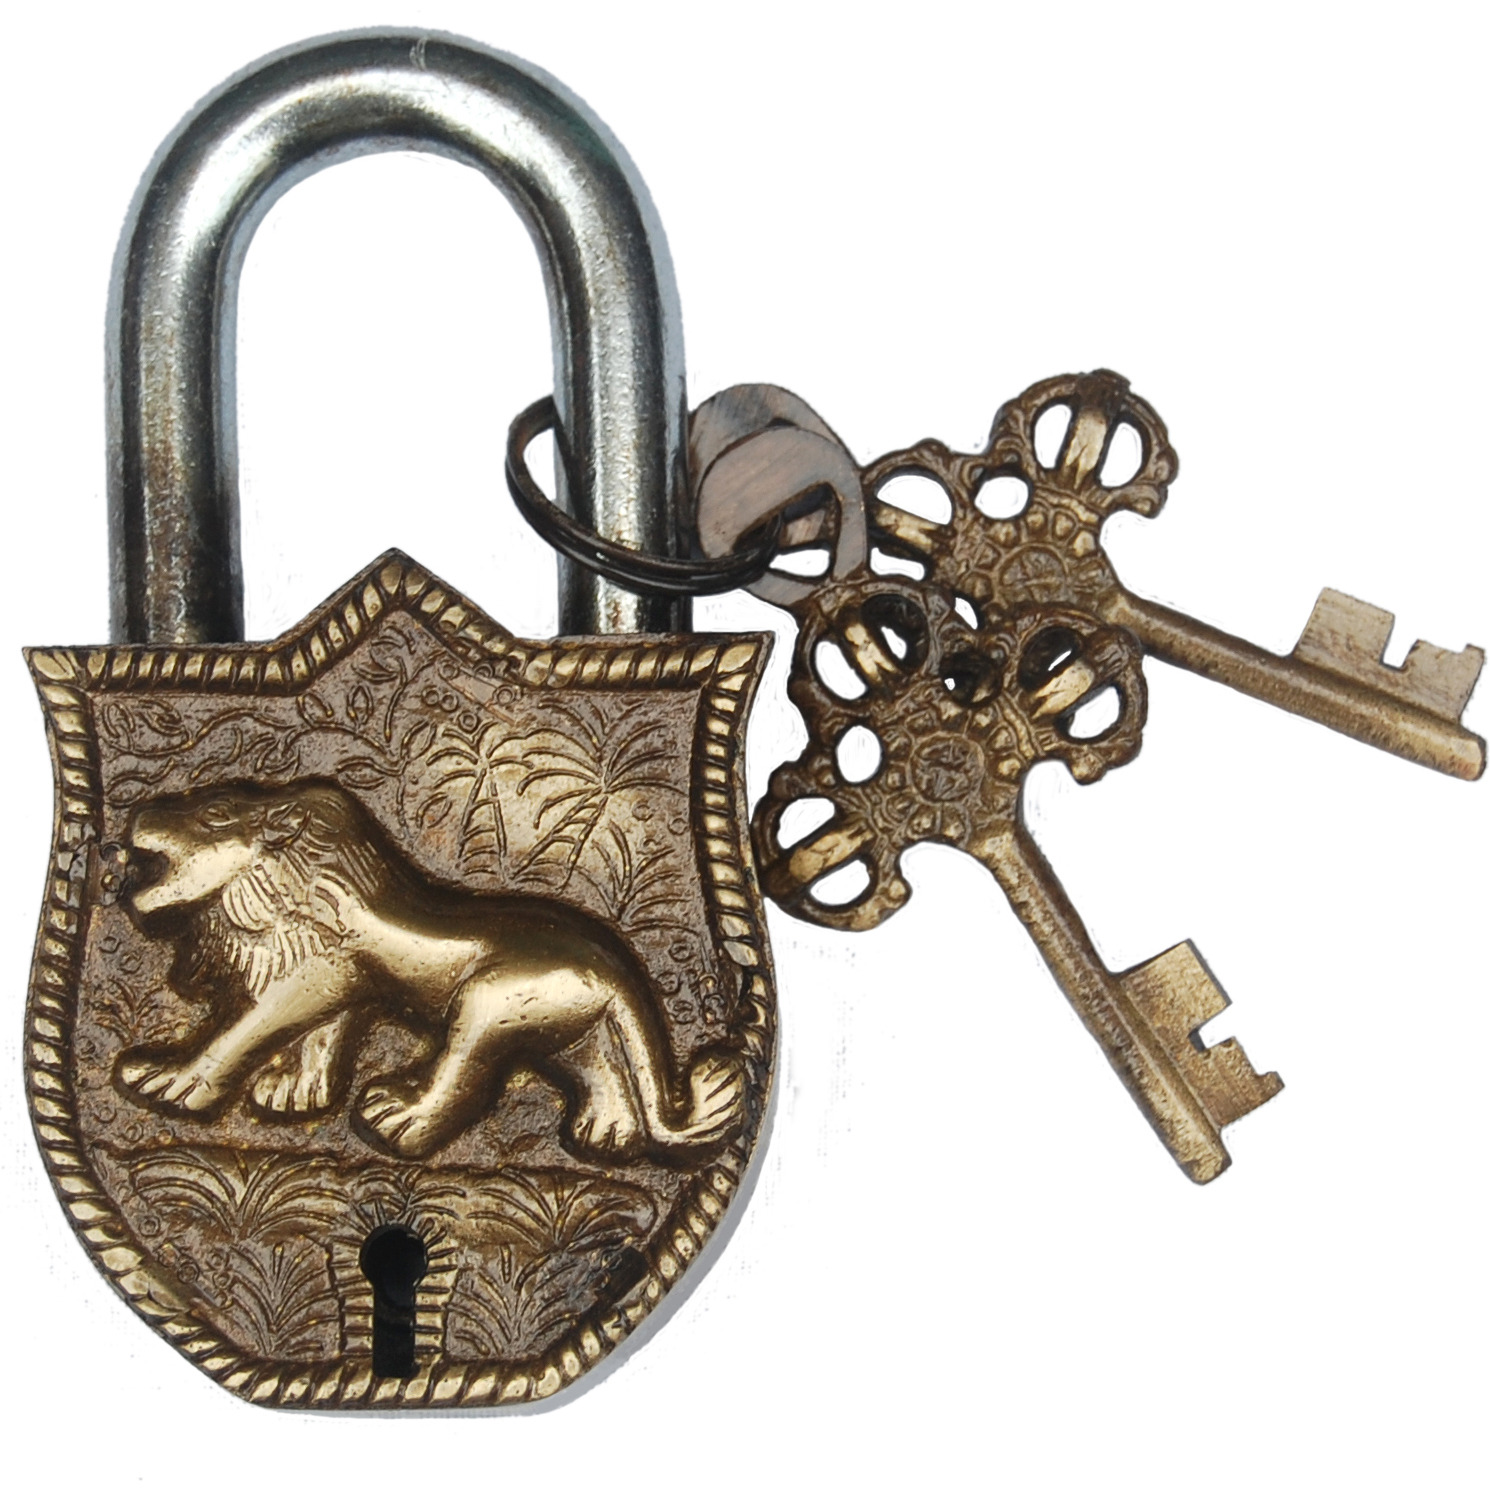 Aakrati Handicraft Pad Lock Of Lion Figure